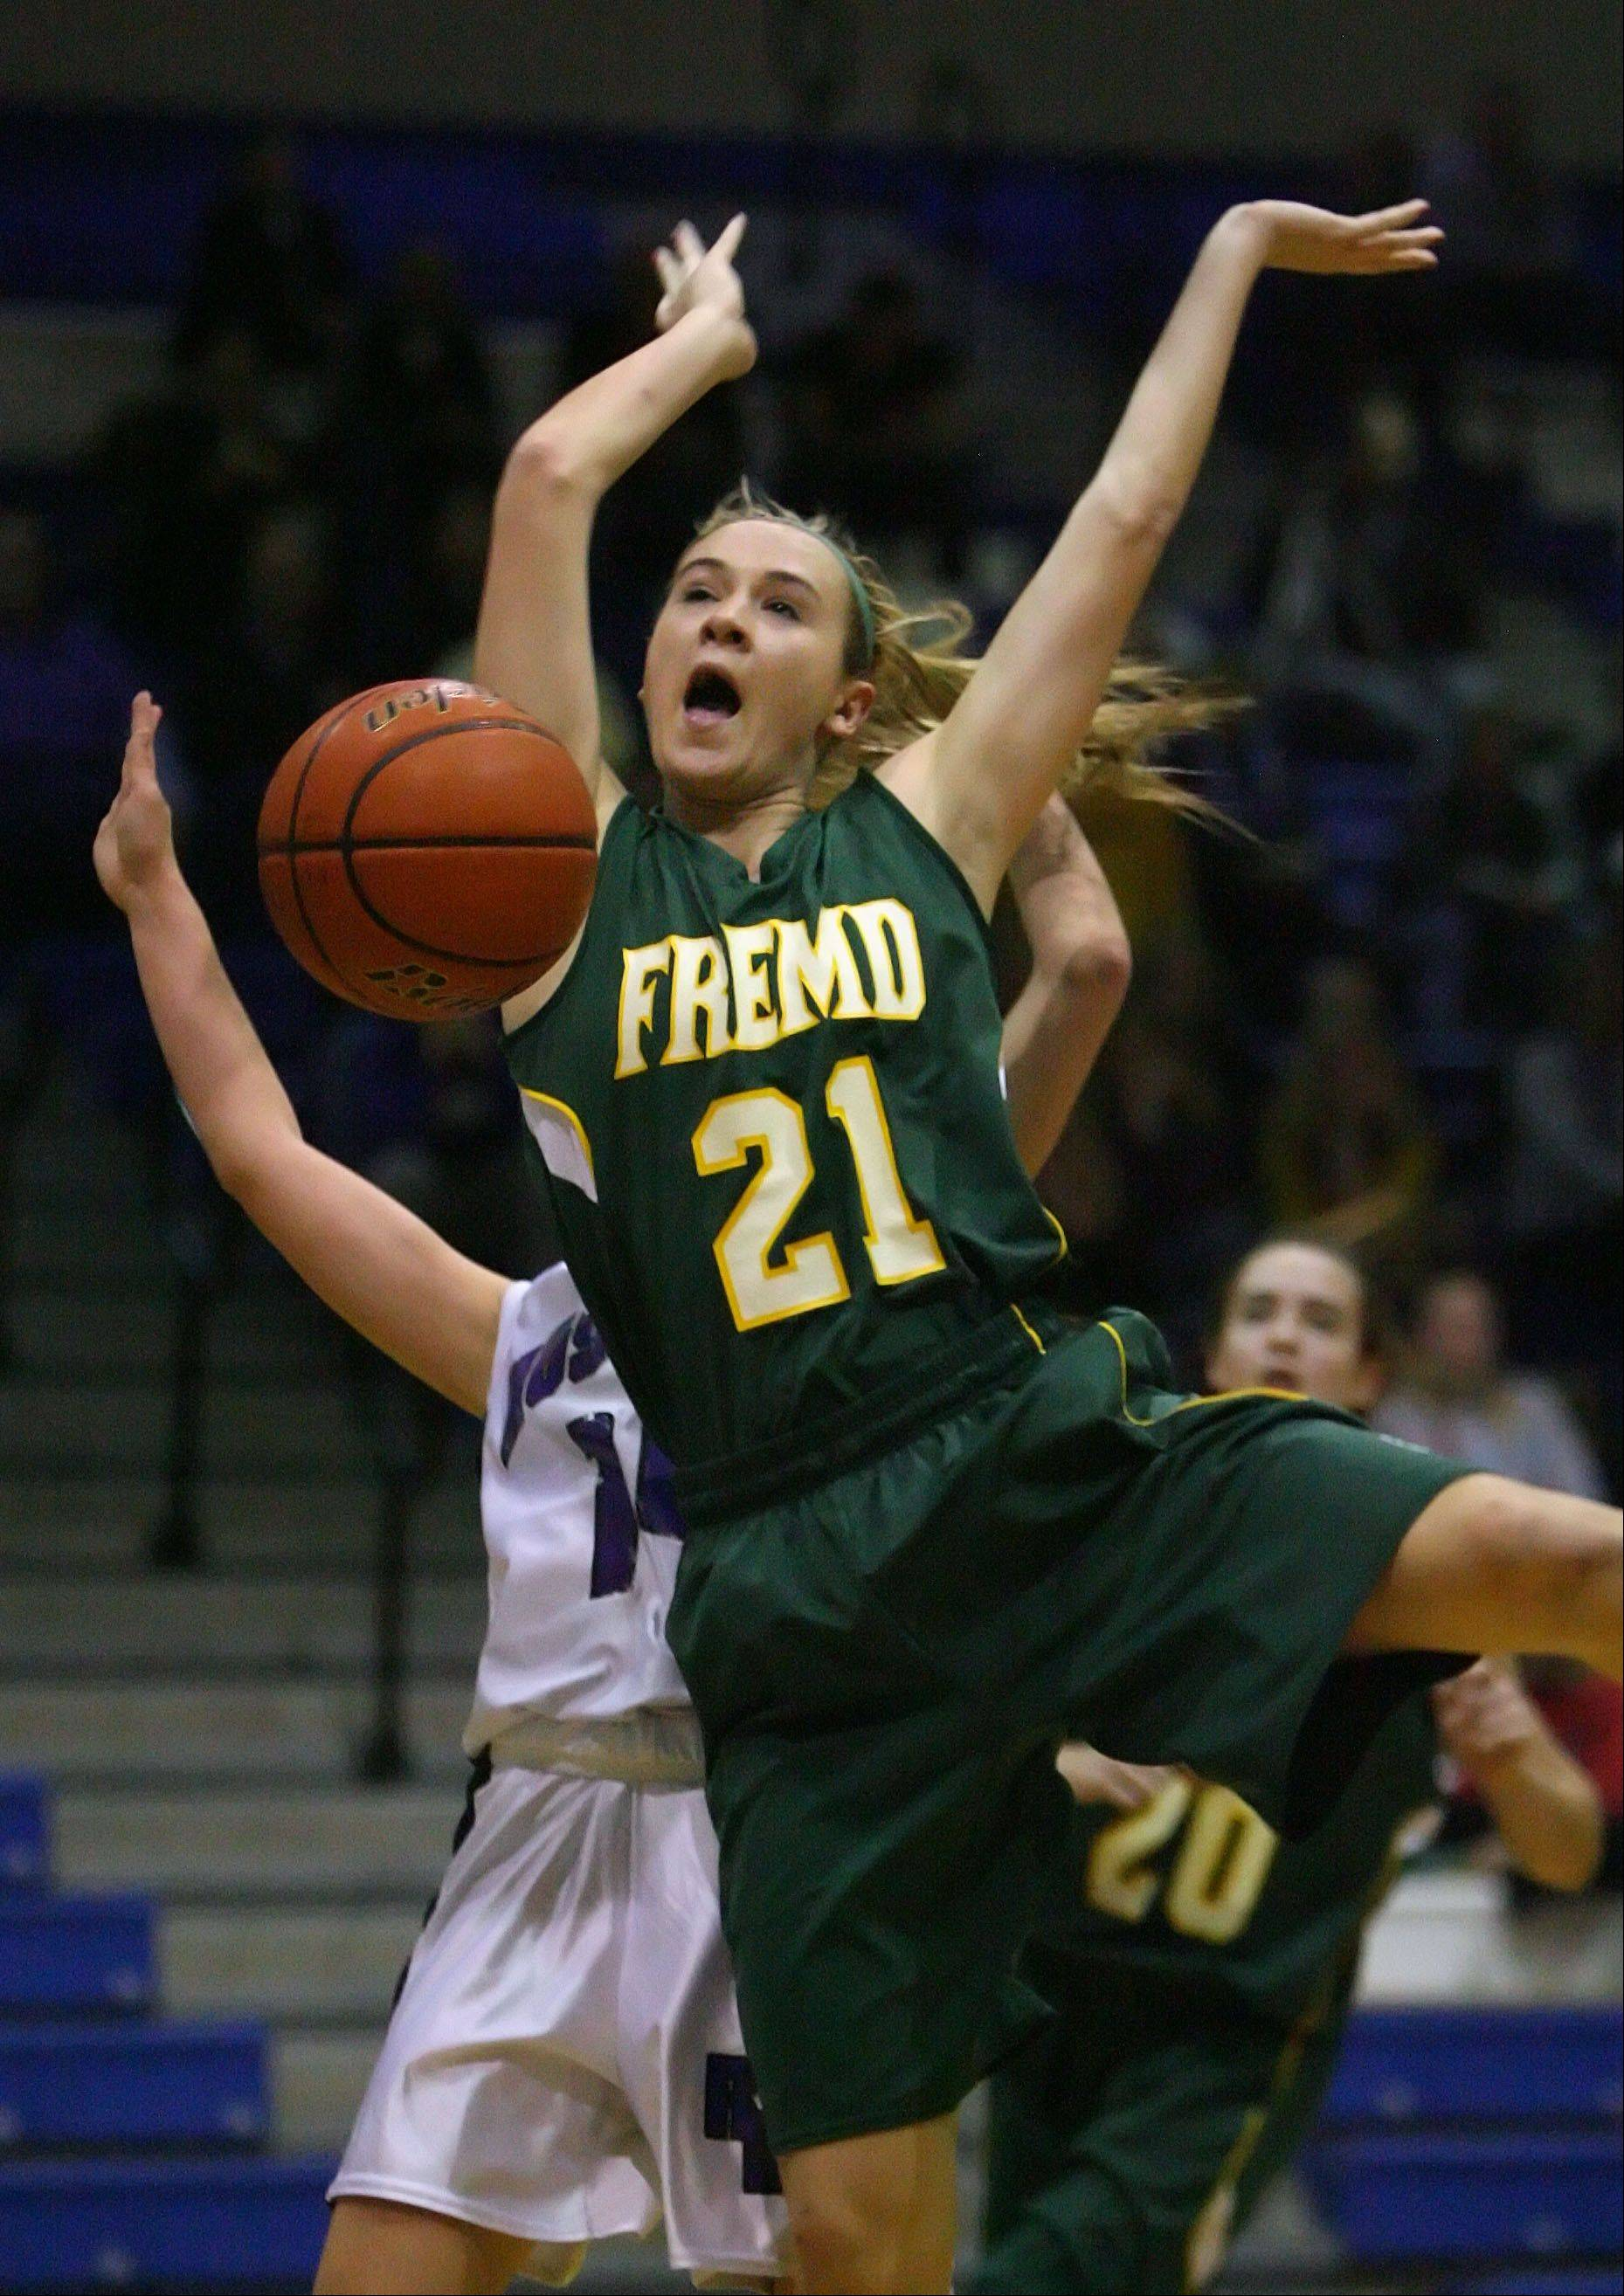 Fremd's Ashley McConnell gets the ball stripped by Rolling Meadows' Sami Kay as she drives to the hoop Wednesday night at Lake Zurich.